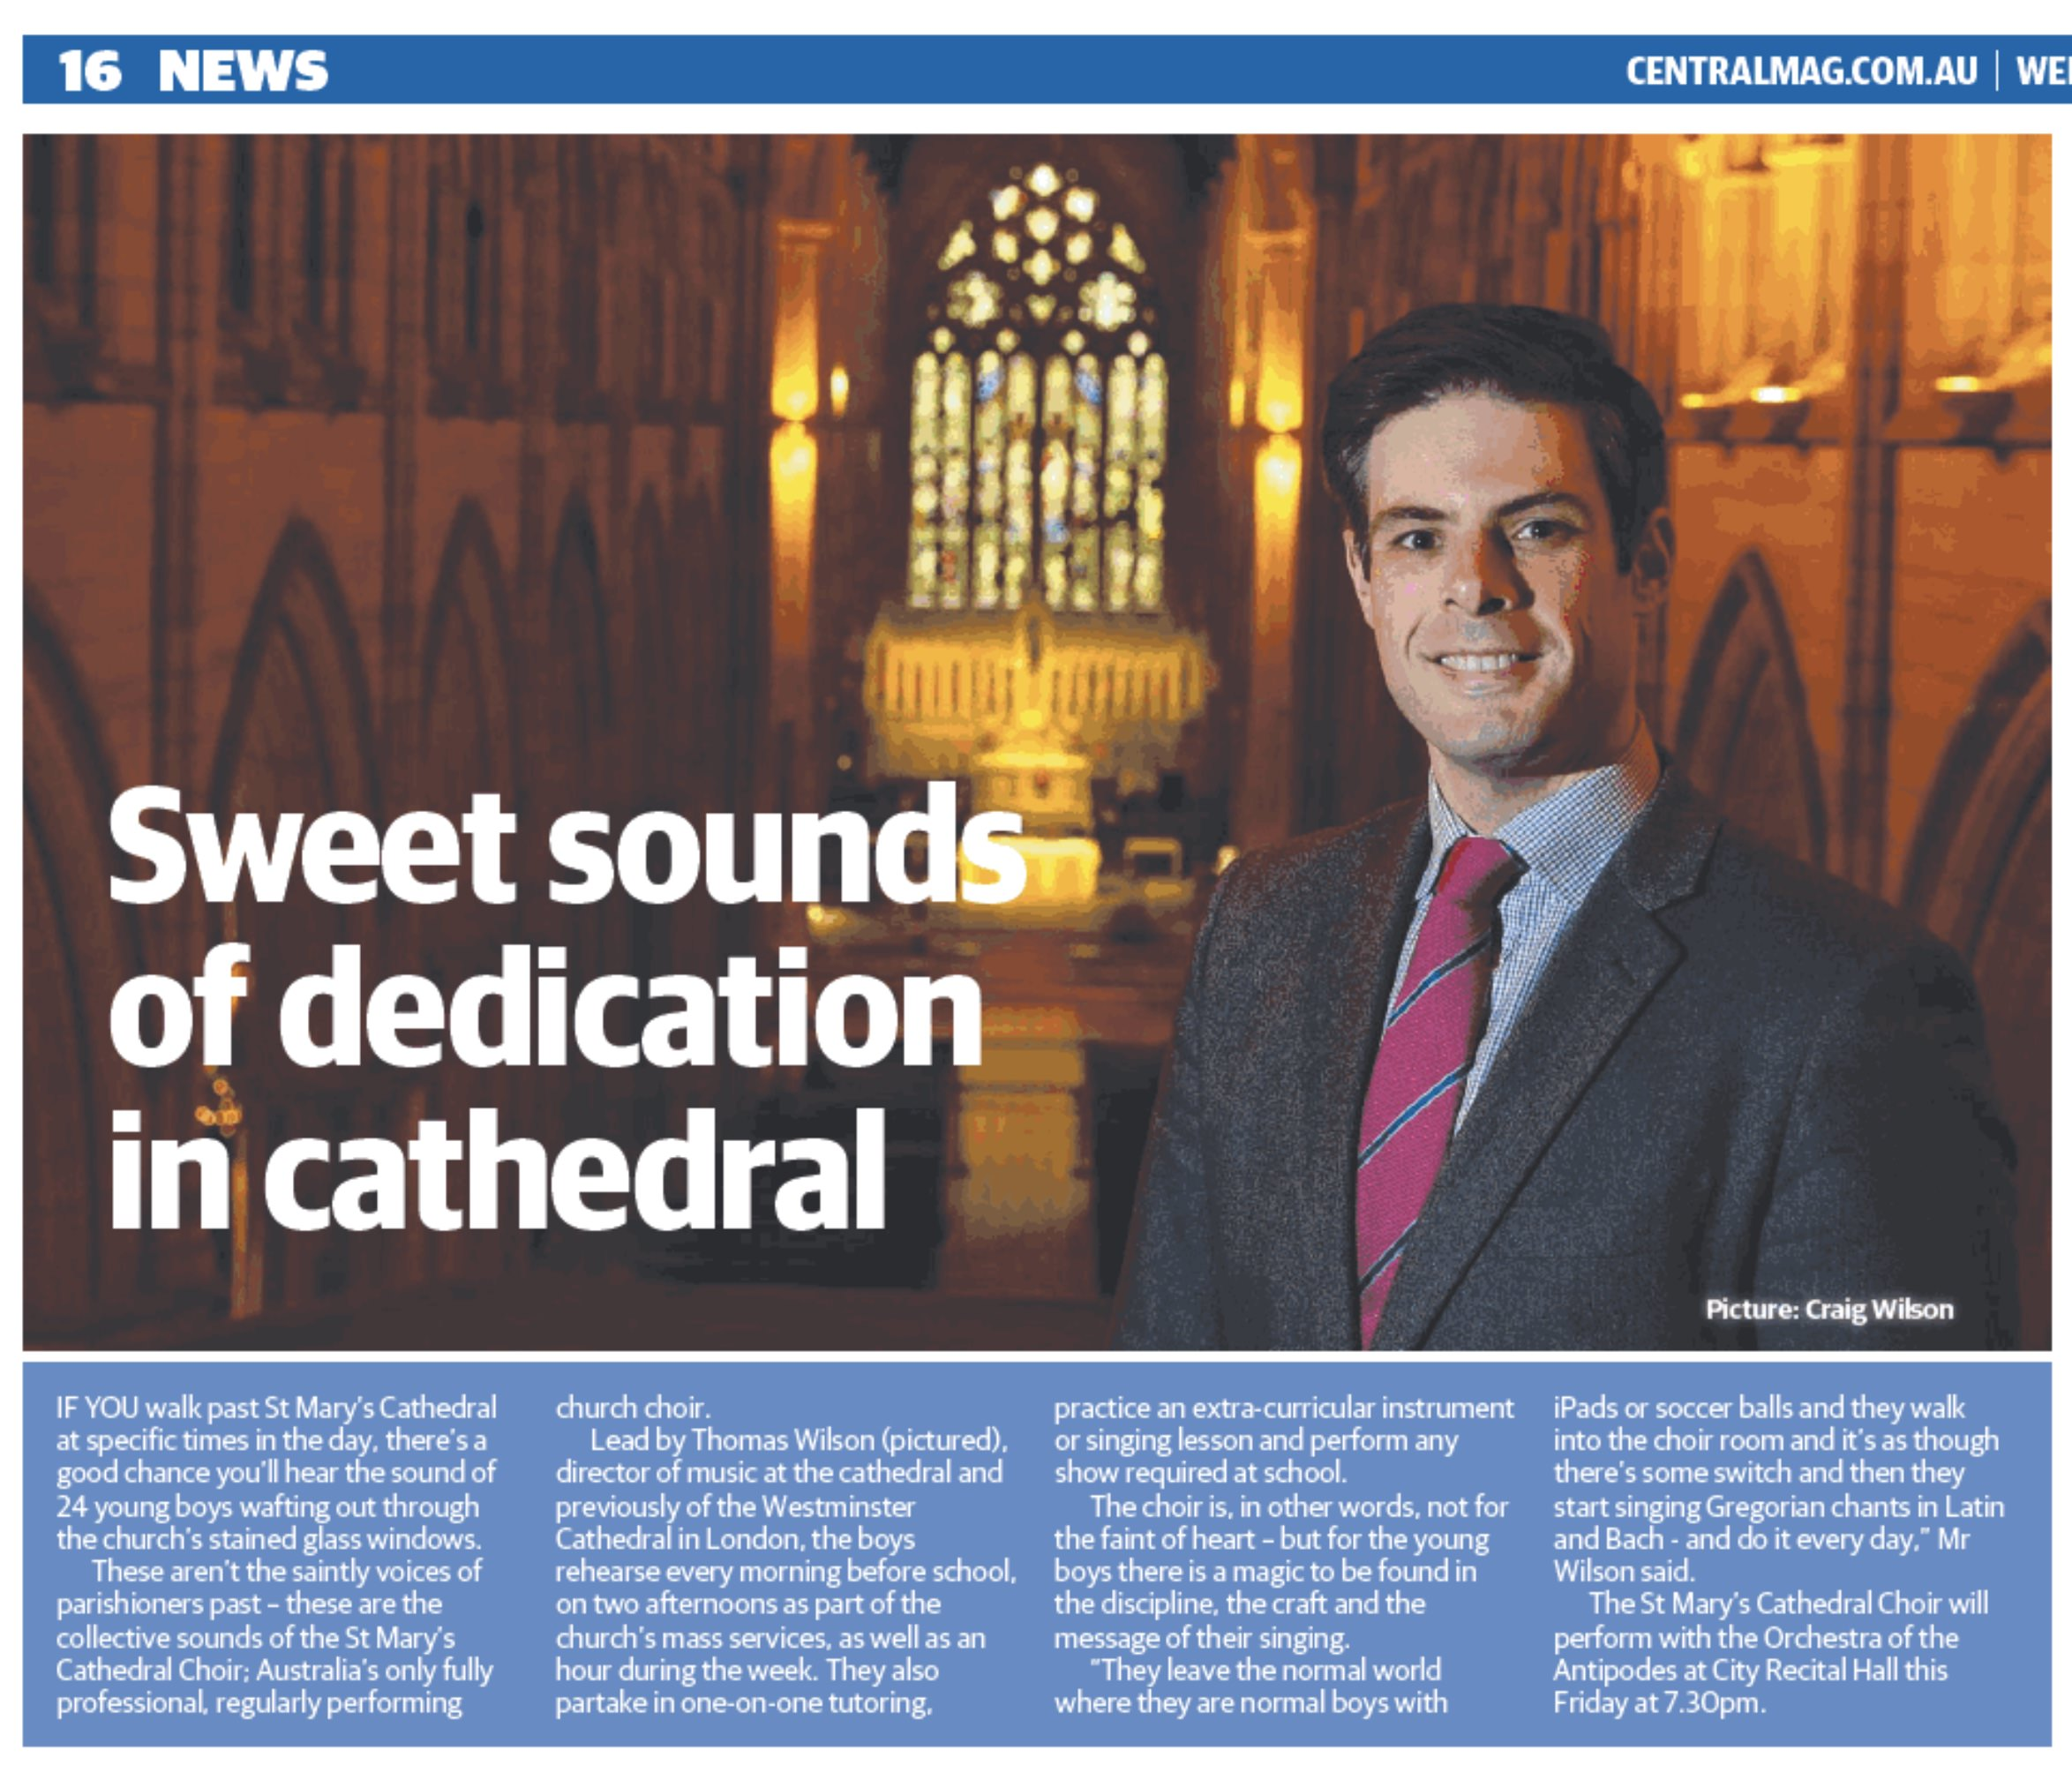 Sydney Central , 'Sweet sounds of dedication in cathedral', 28th June 2017.